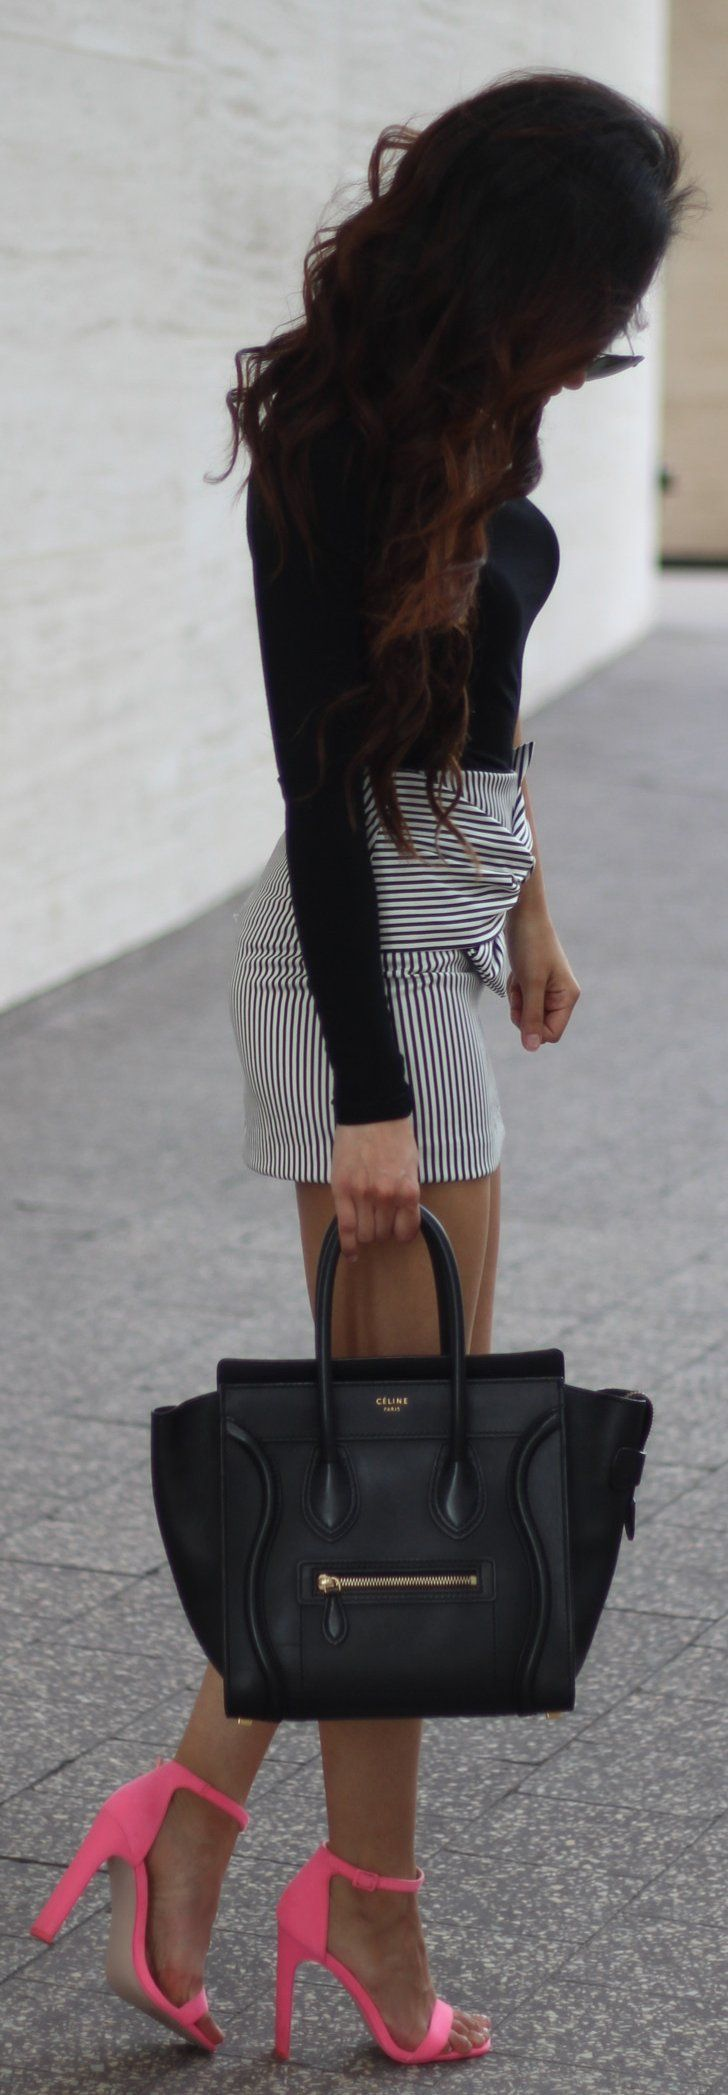 #summer #outfits Black Top + Striped Skirt + Pink Sandals